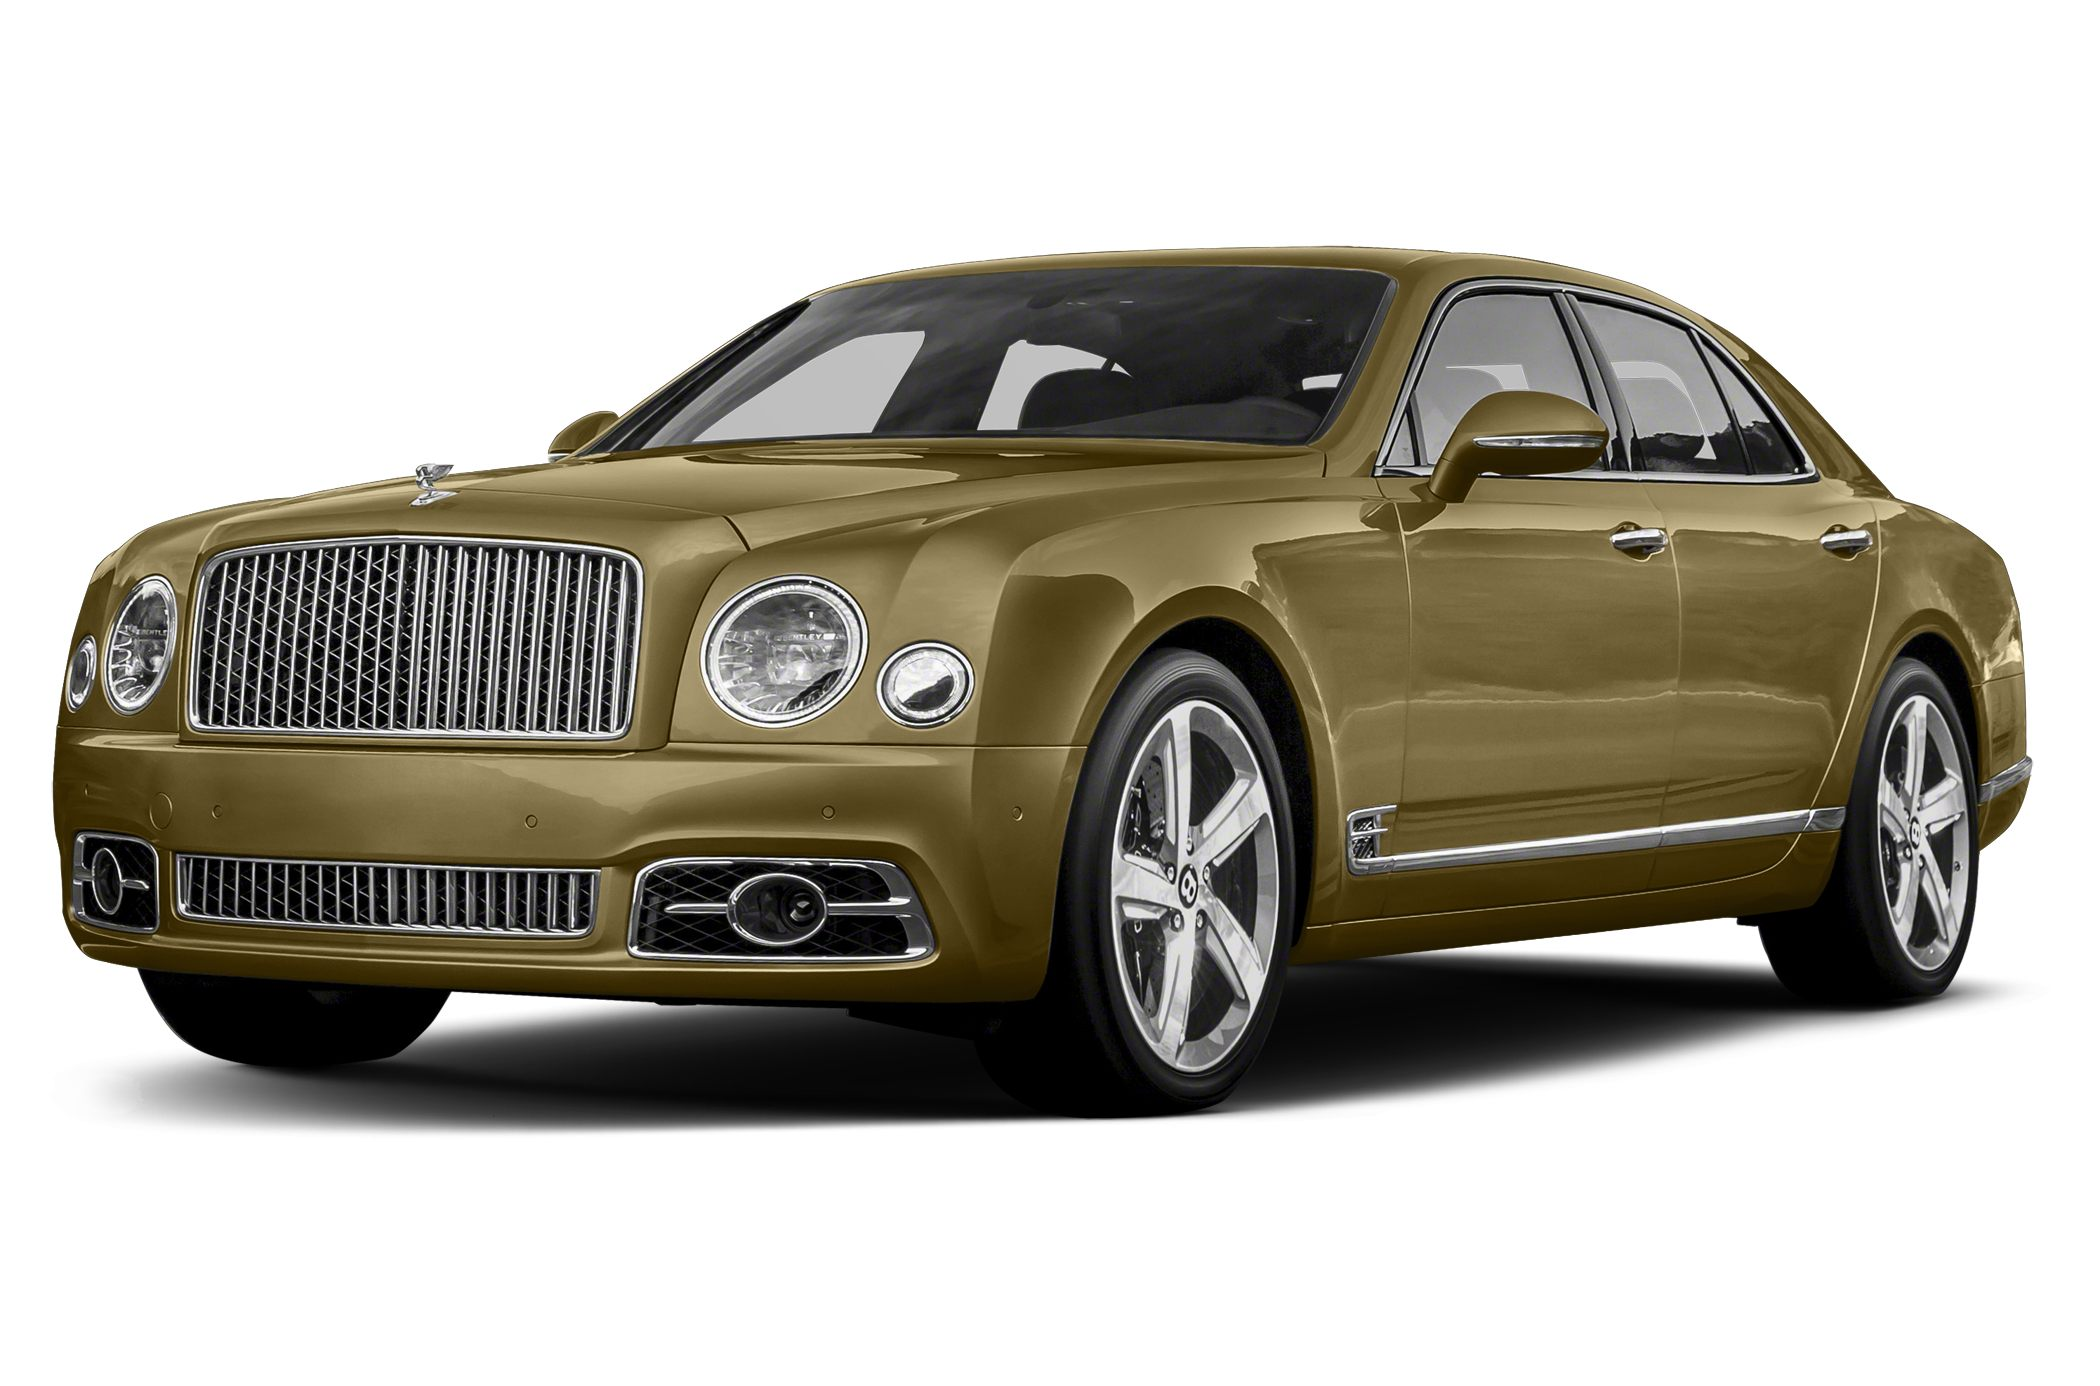 2020 Bentley Muslane Price and Review